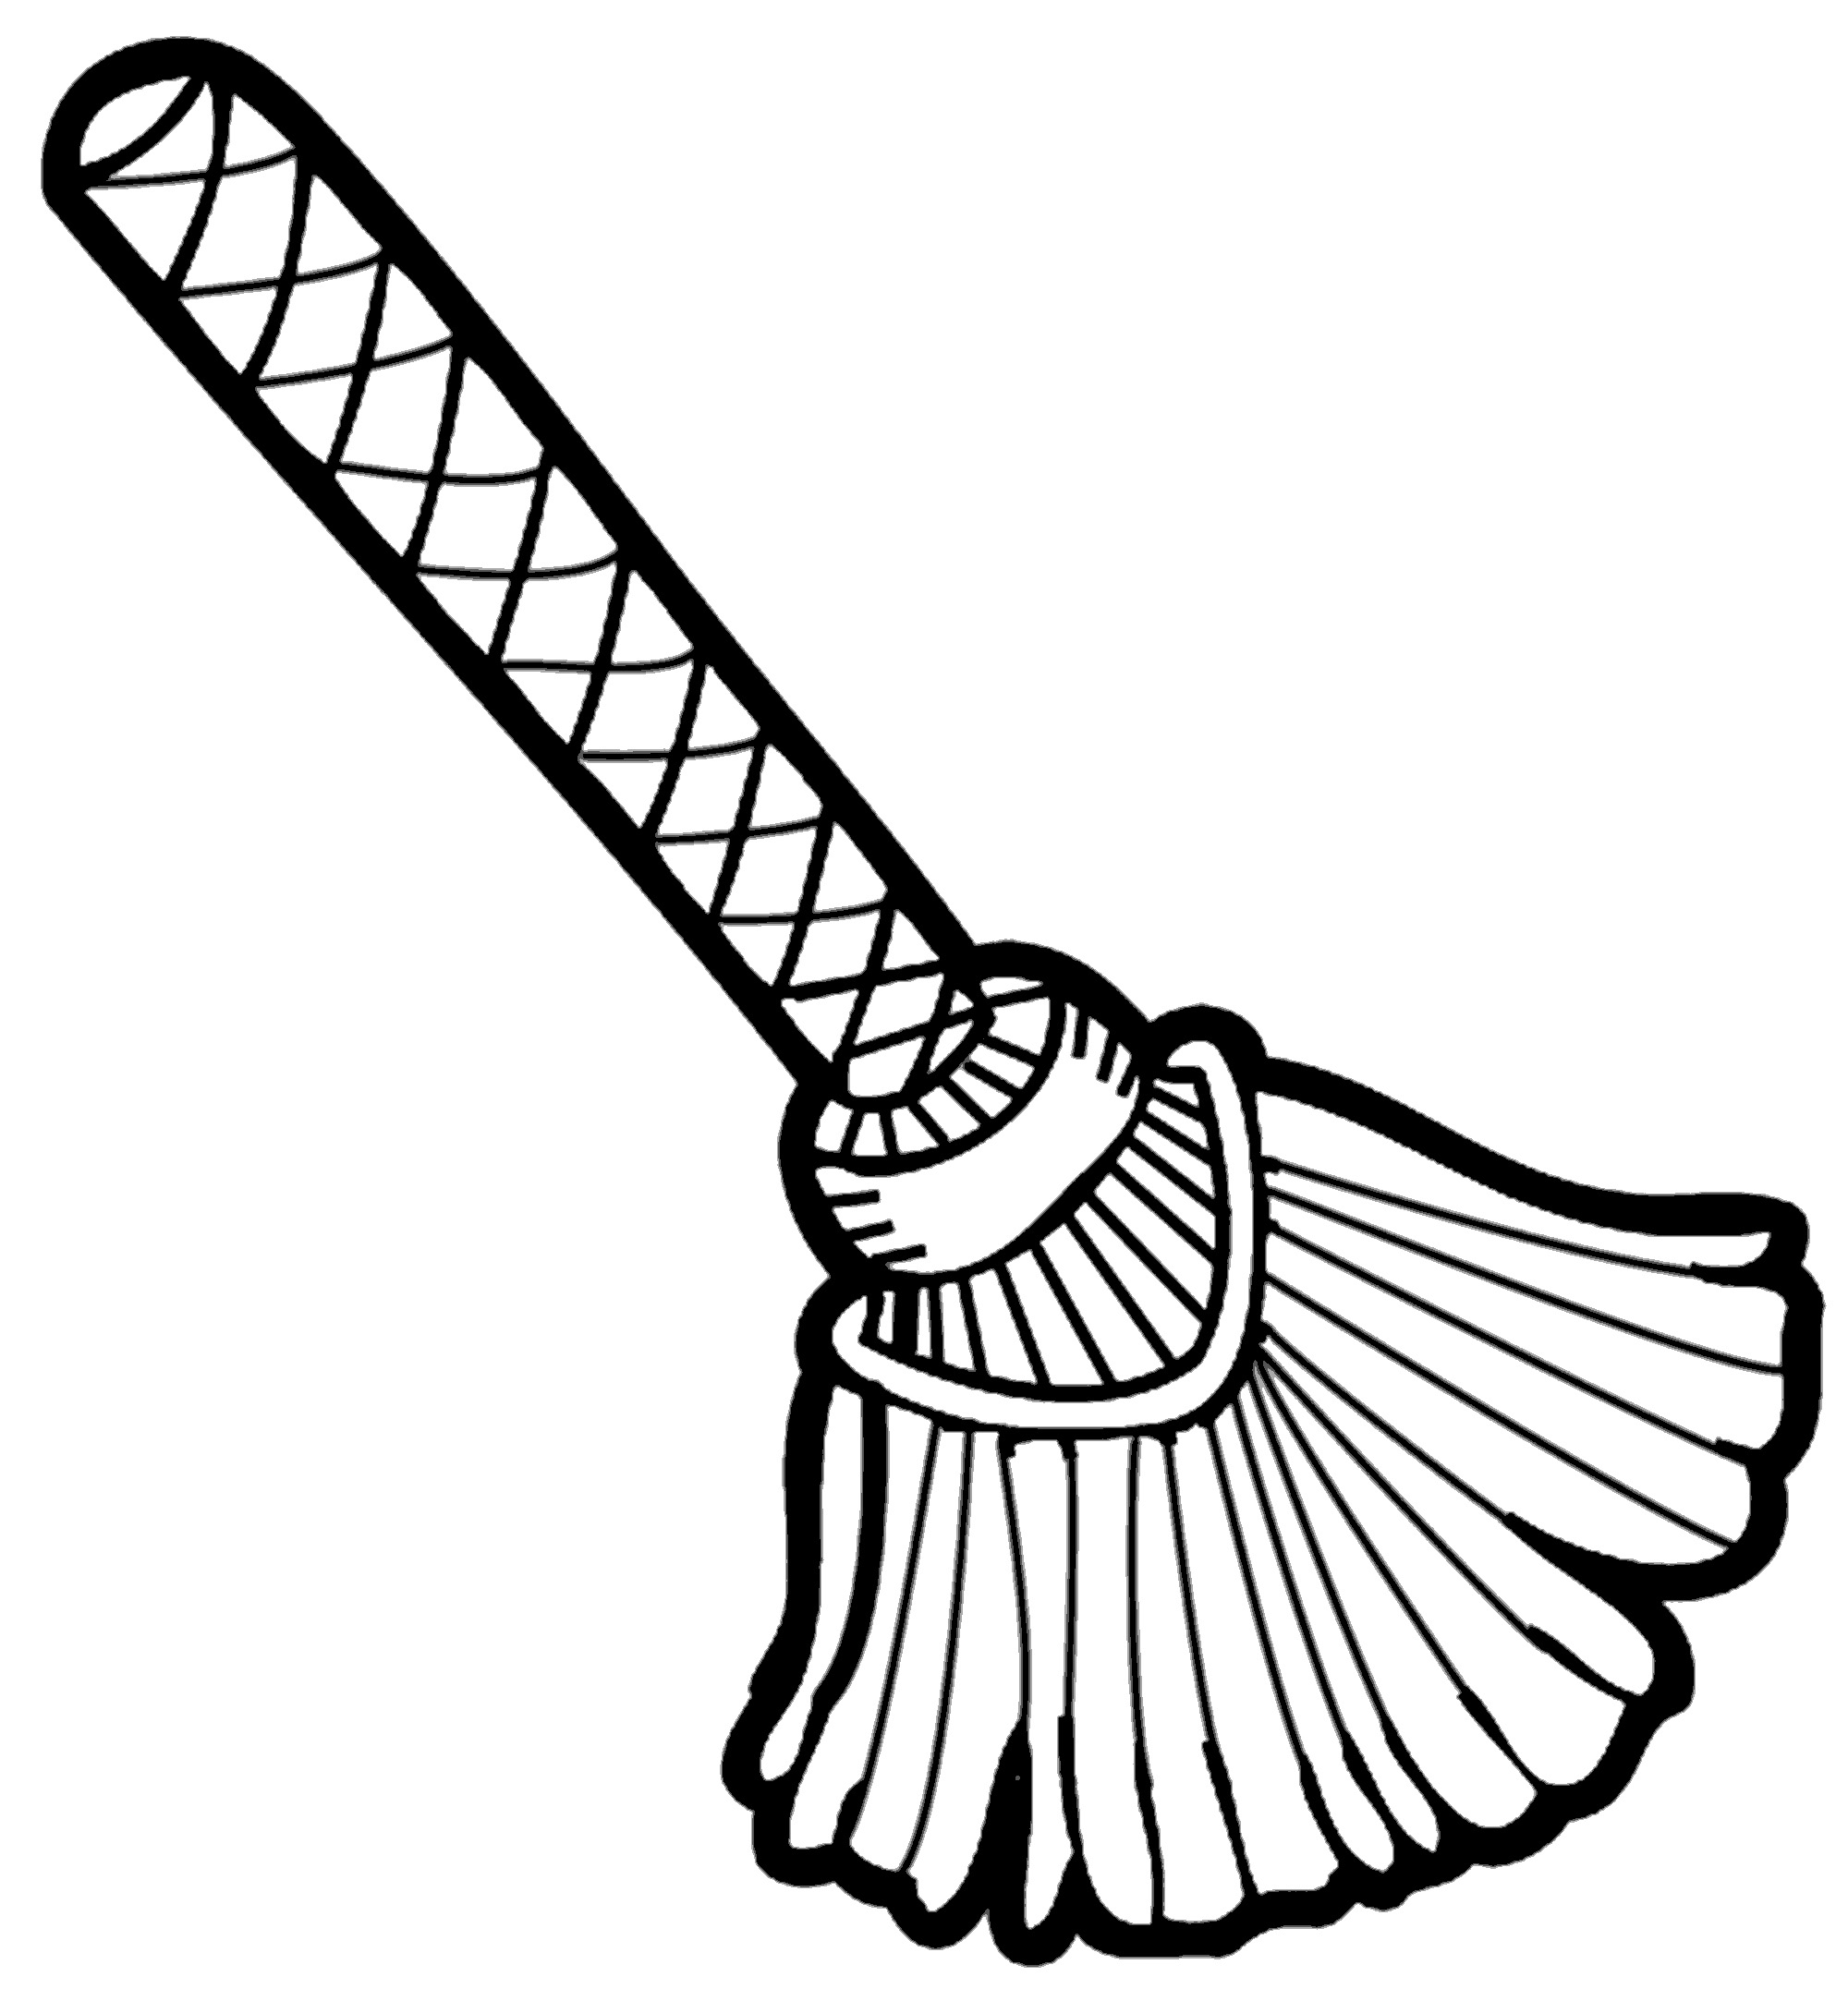 Broom clipart coloring page. Free witch on a